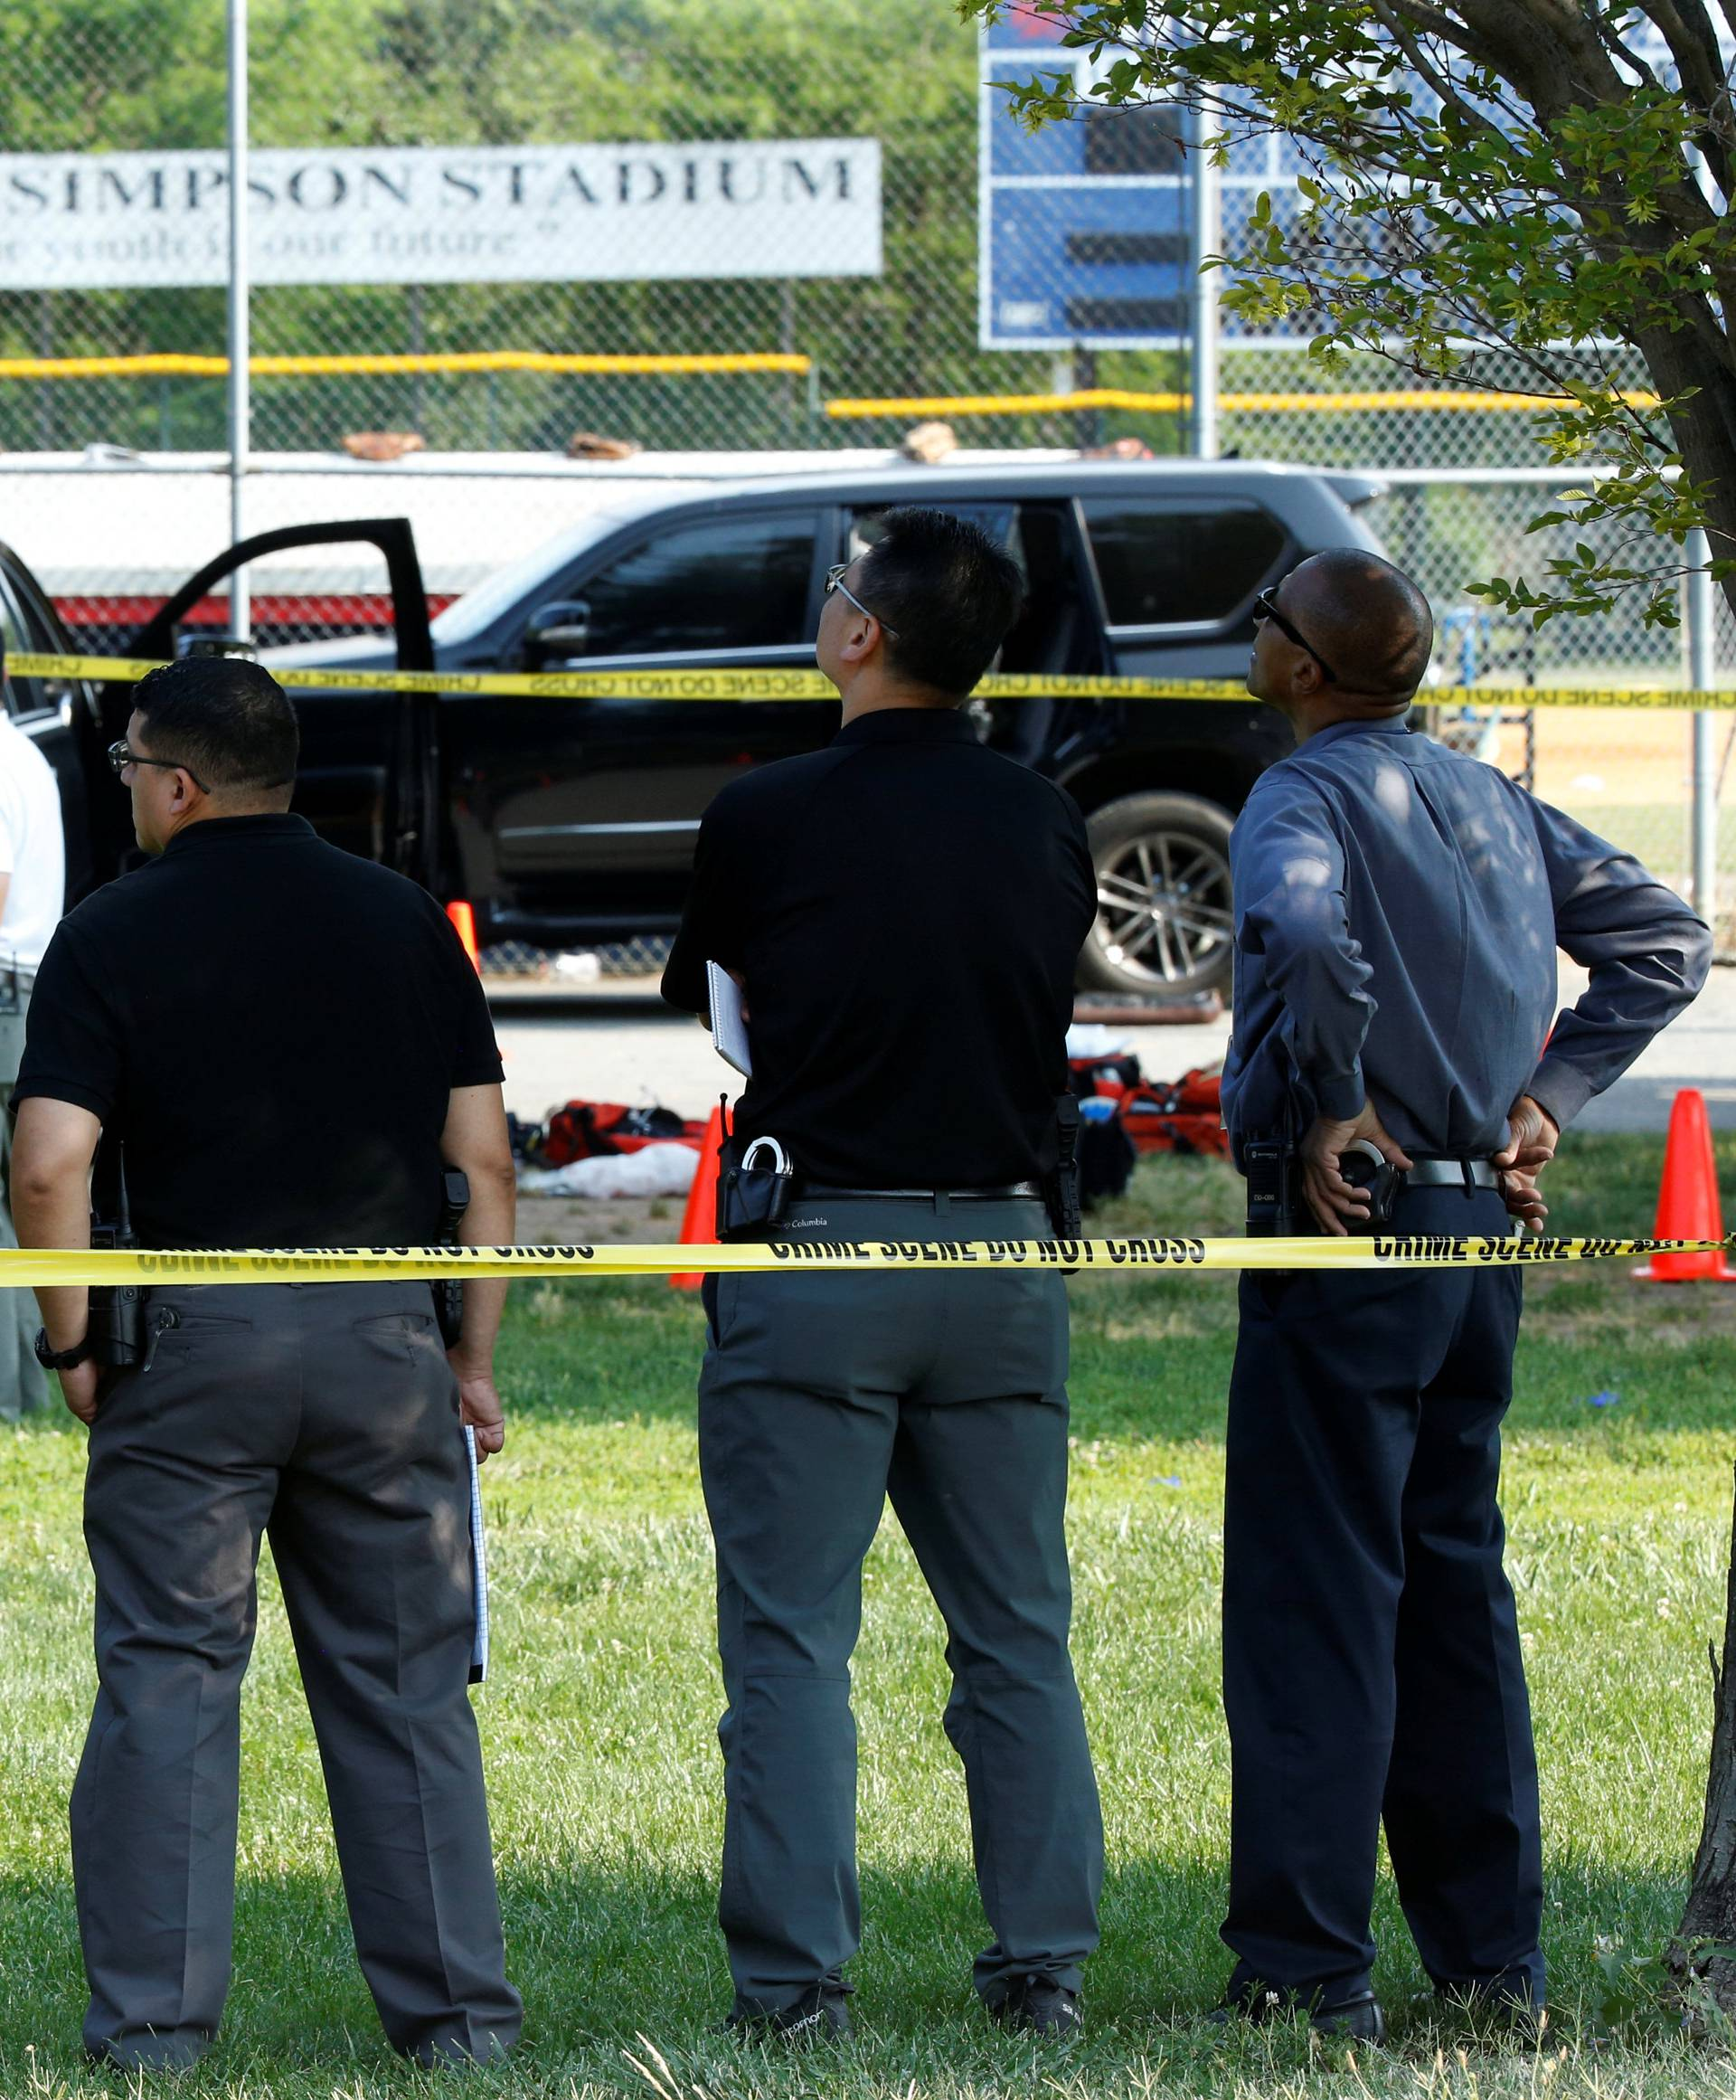 Police investigate the shooting scene after a gunman opened fire on Republican members of Congress during a baseball practice in Alexandria, Virginia